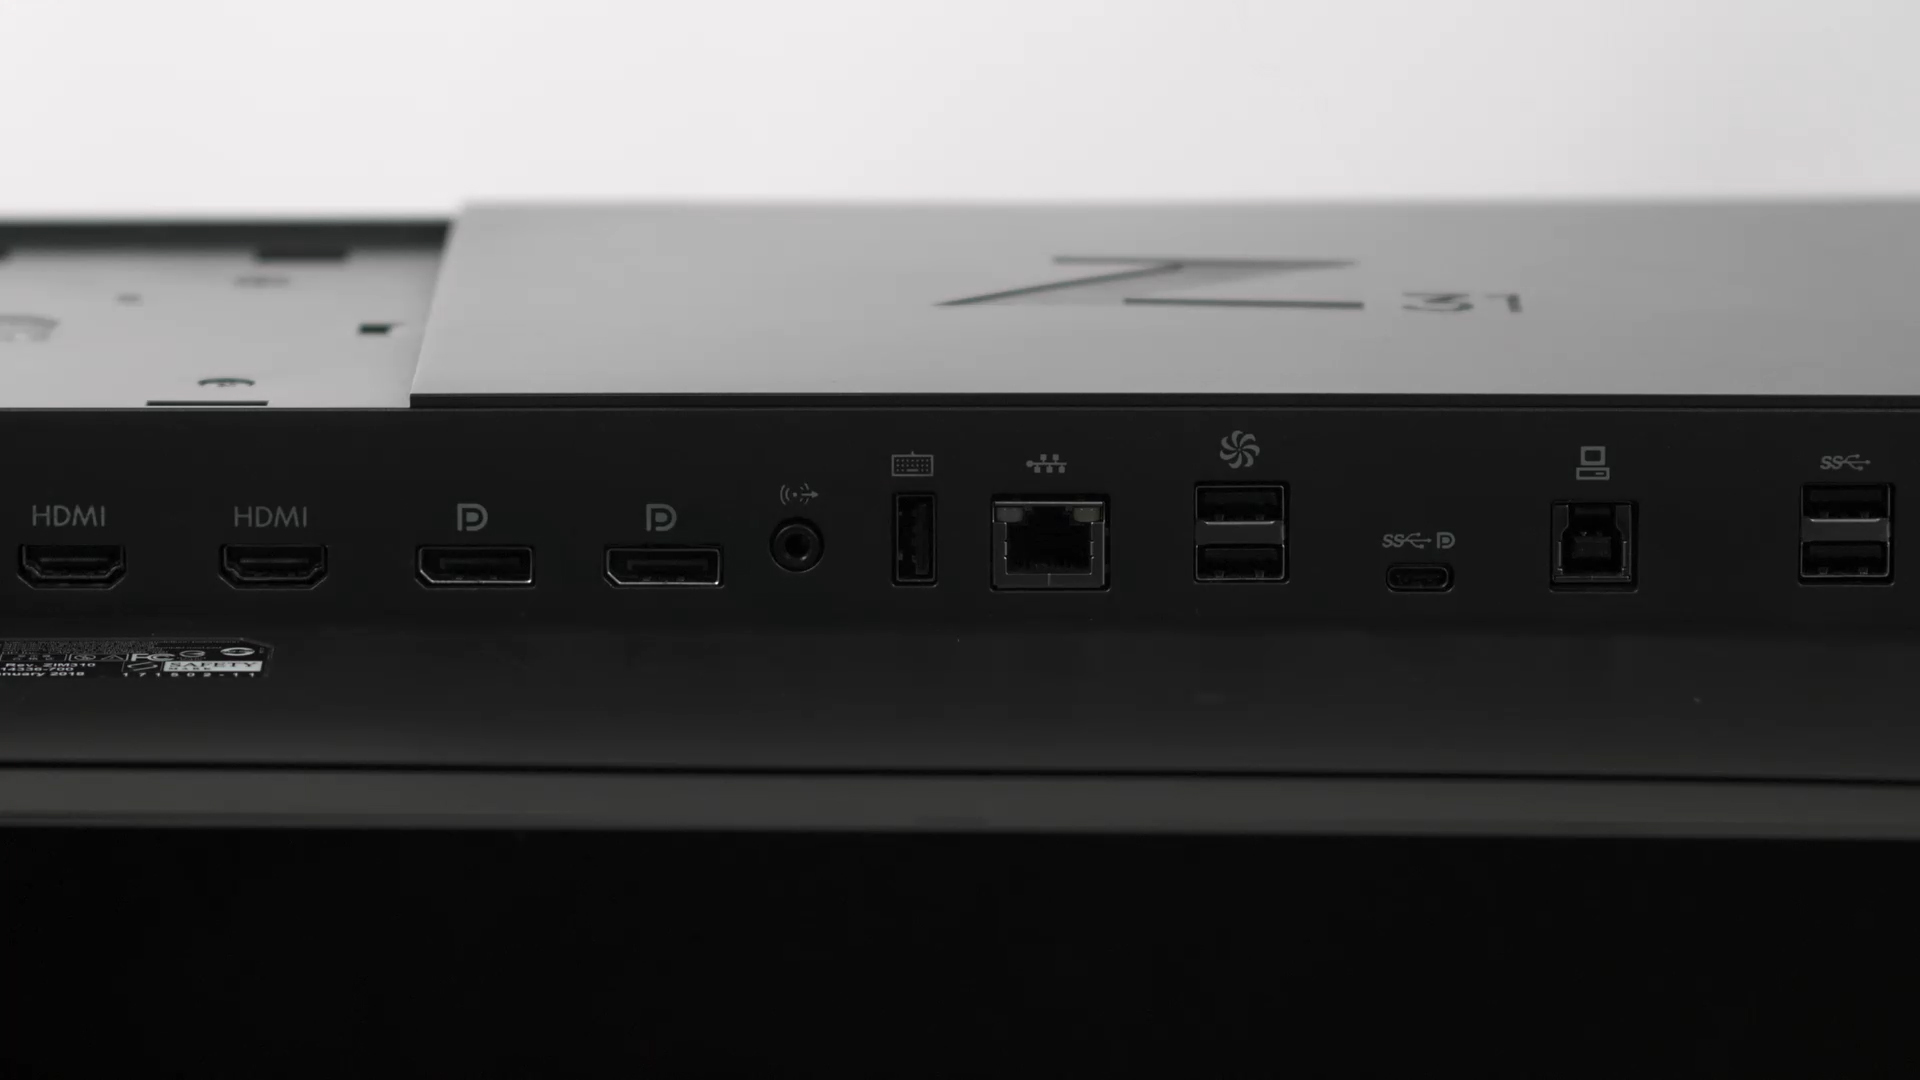 HP DreamColor Z31x ports